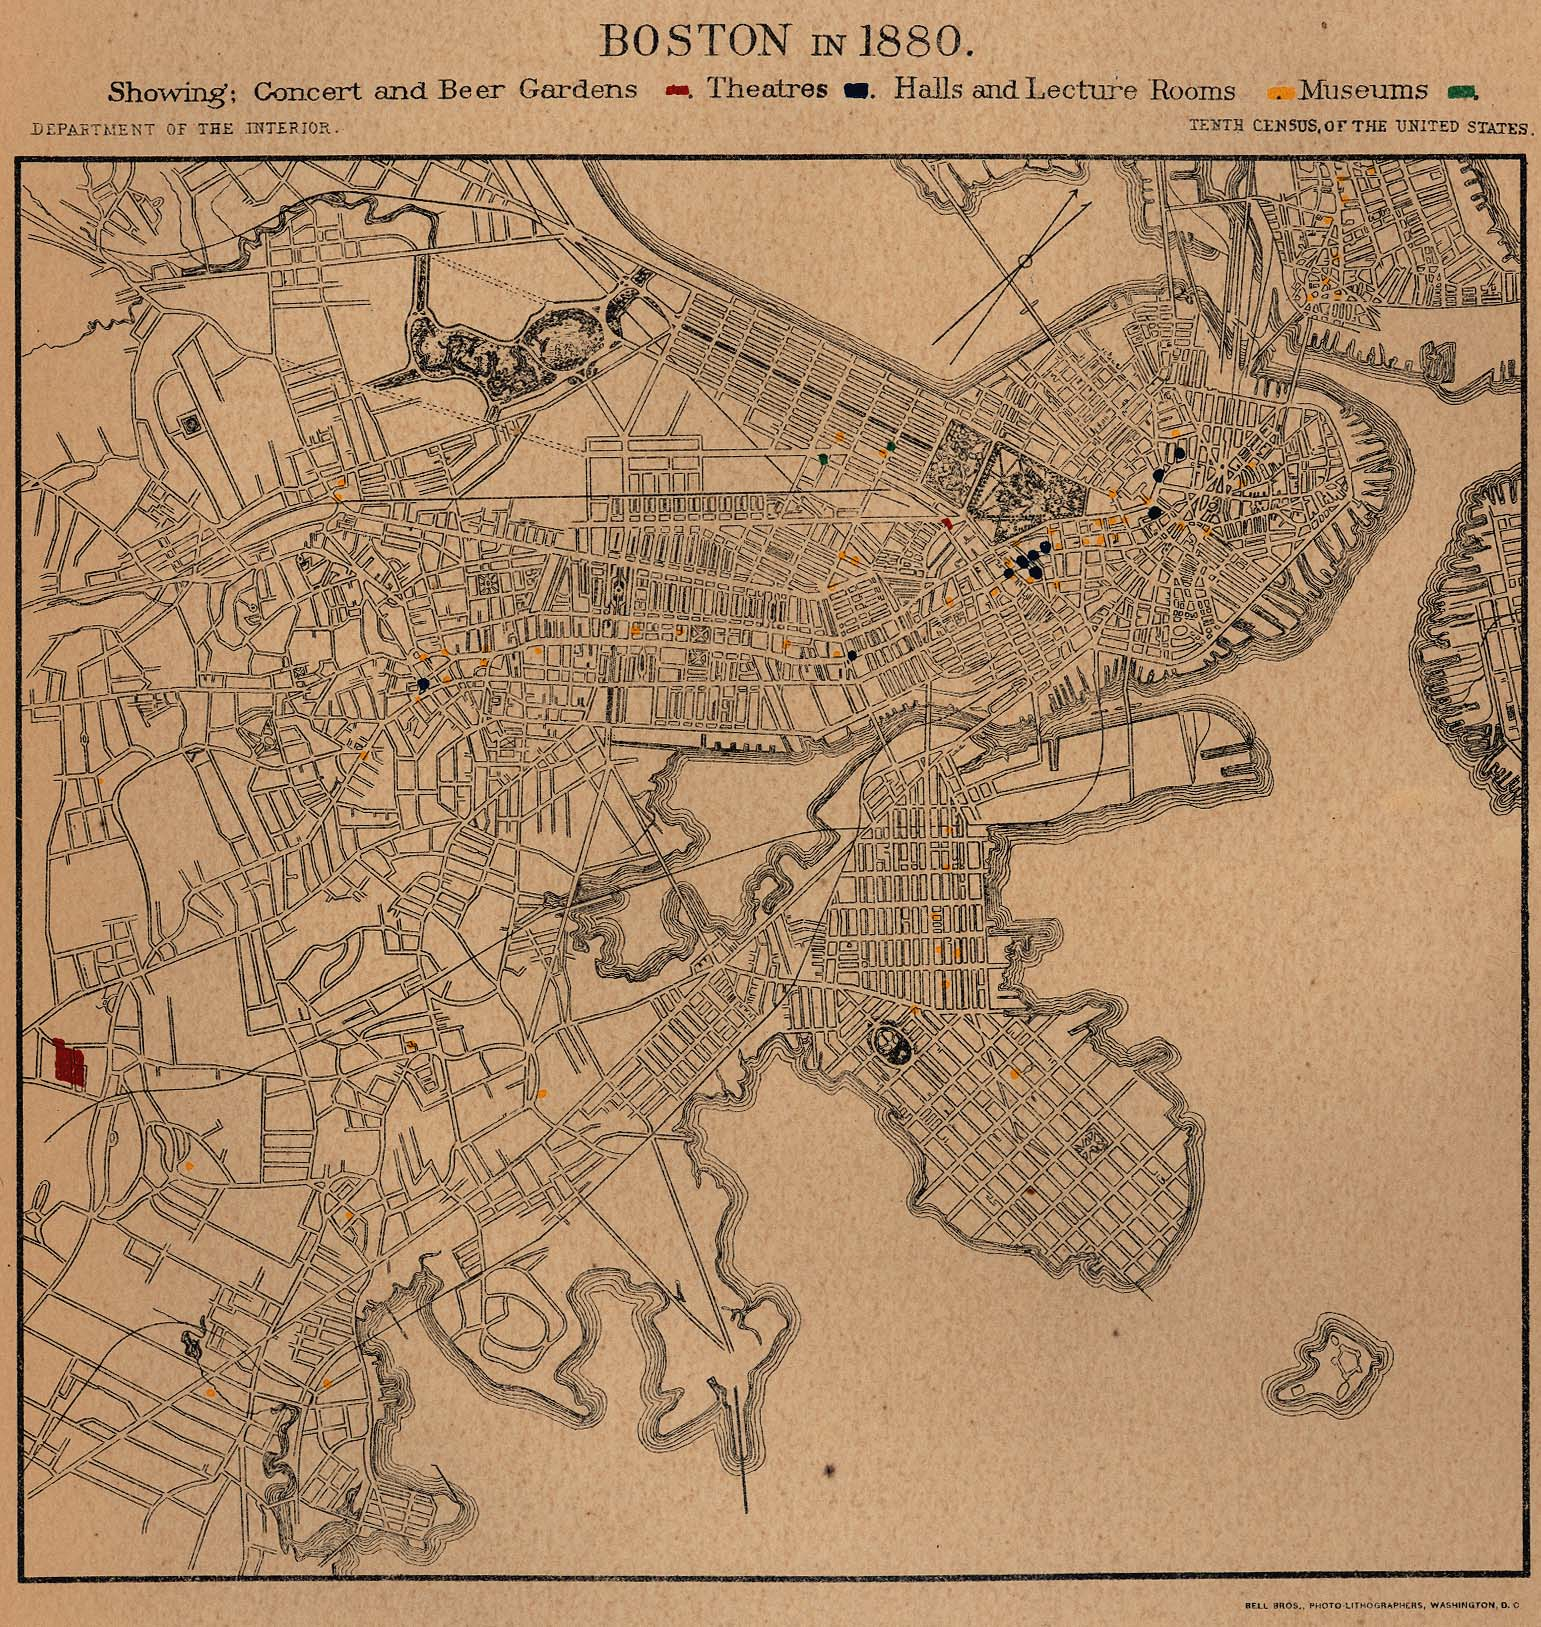 United States Historical City Maps - Perry-Castañeda Map Collection on